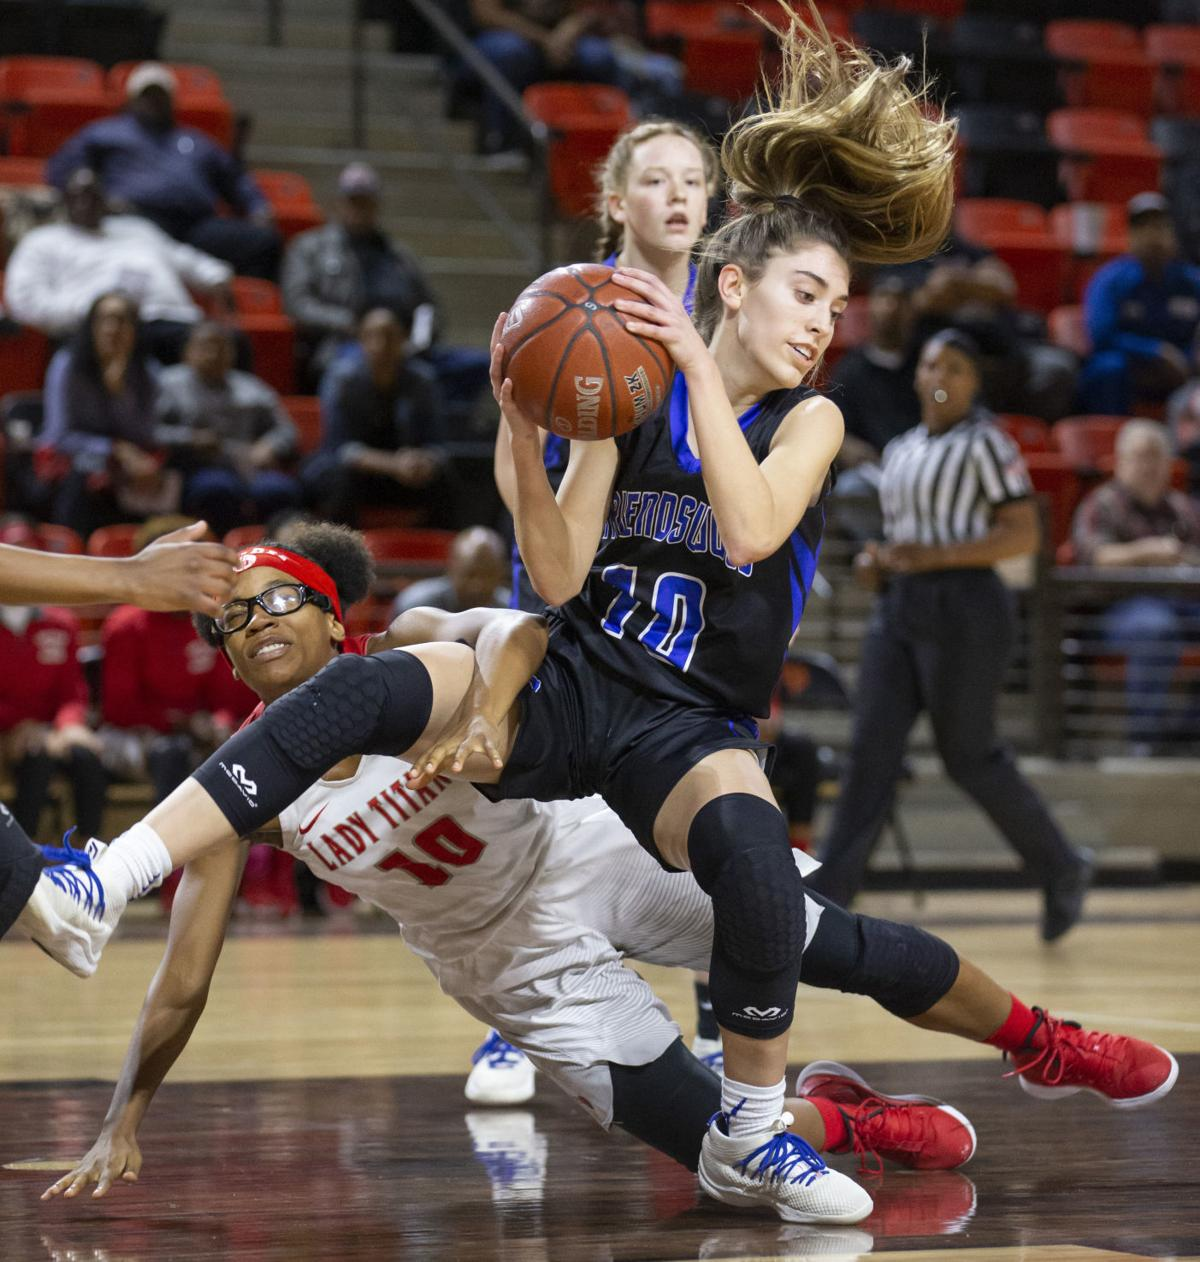 Friendswood vs. Port Arthur Memorial Girls Basketball